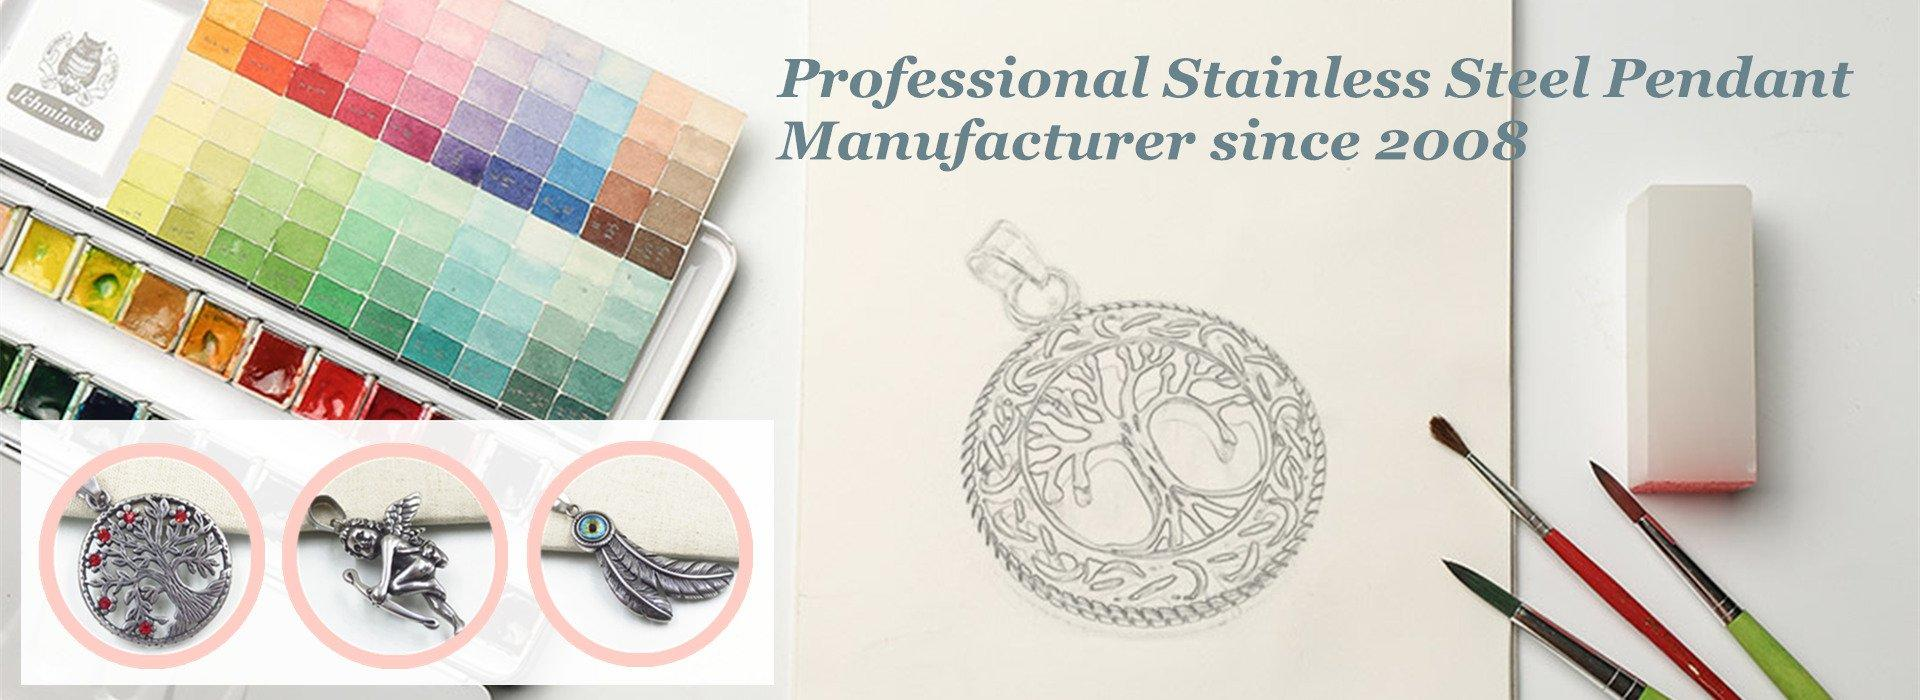 Stainless Steel Pendant Manufacturer